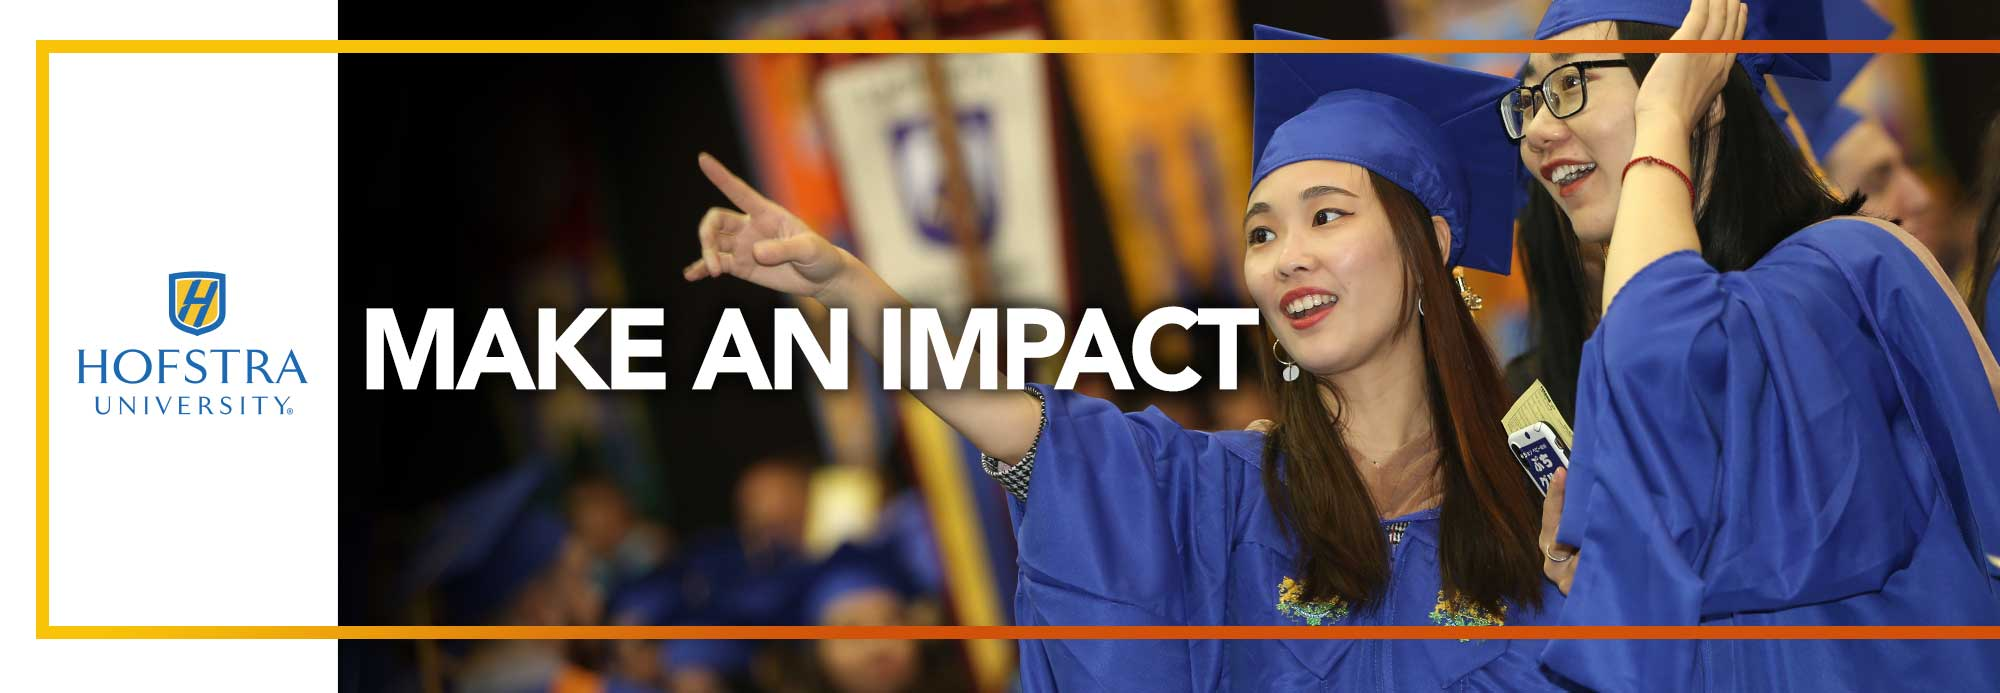 Hofstra University - Make an Impact